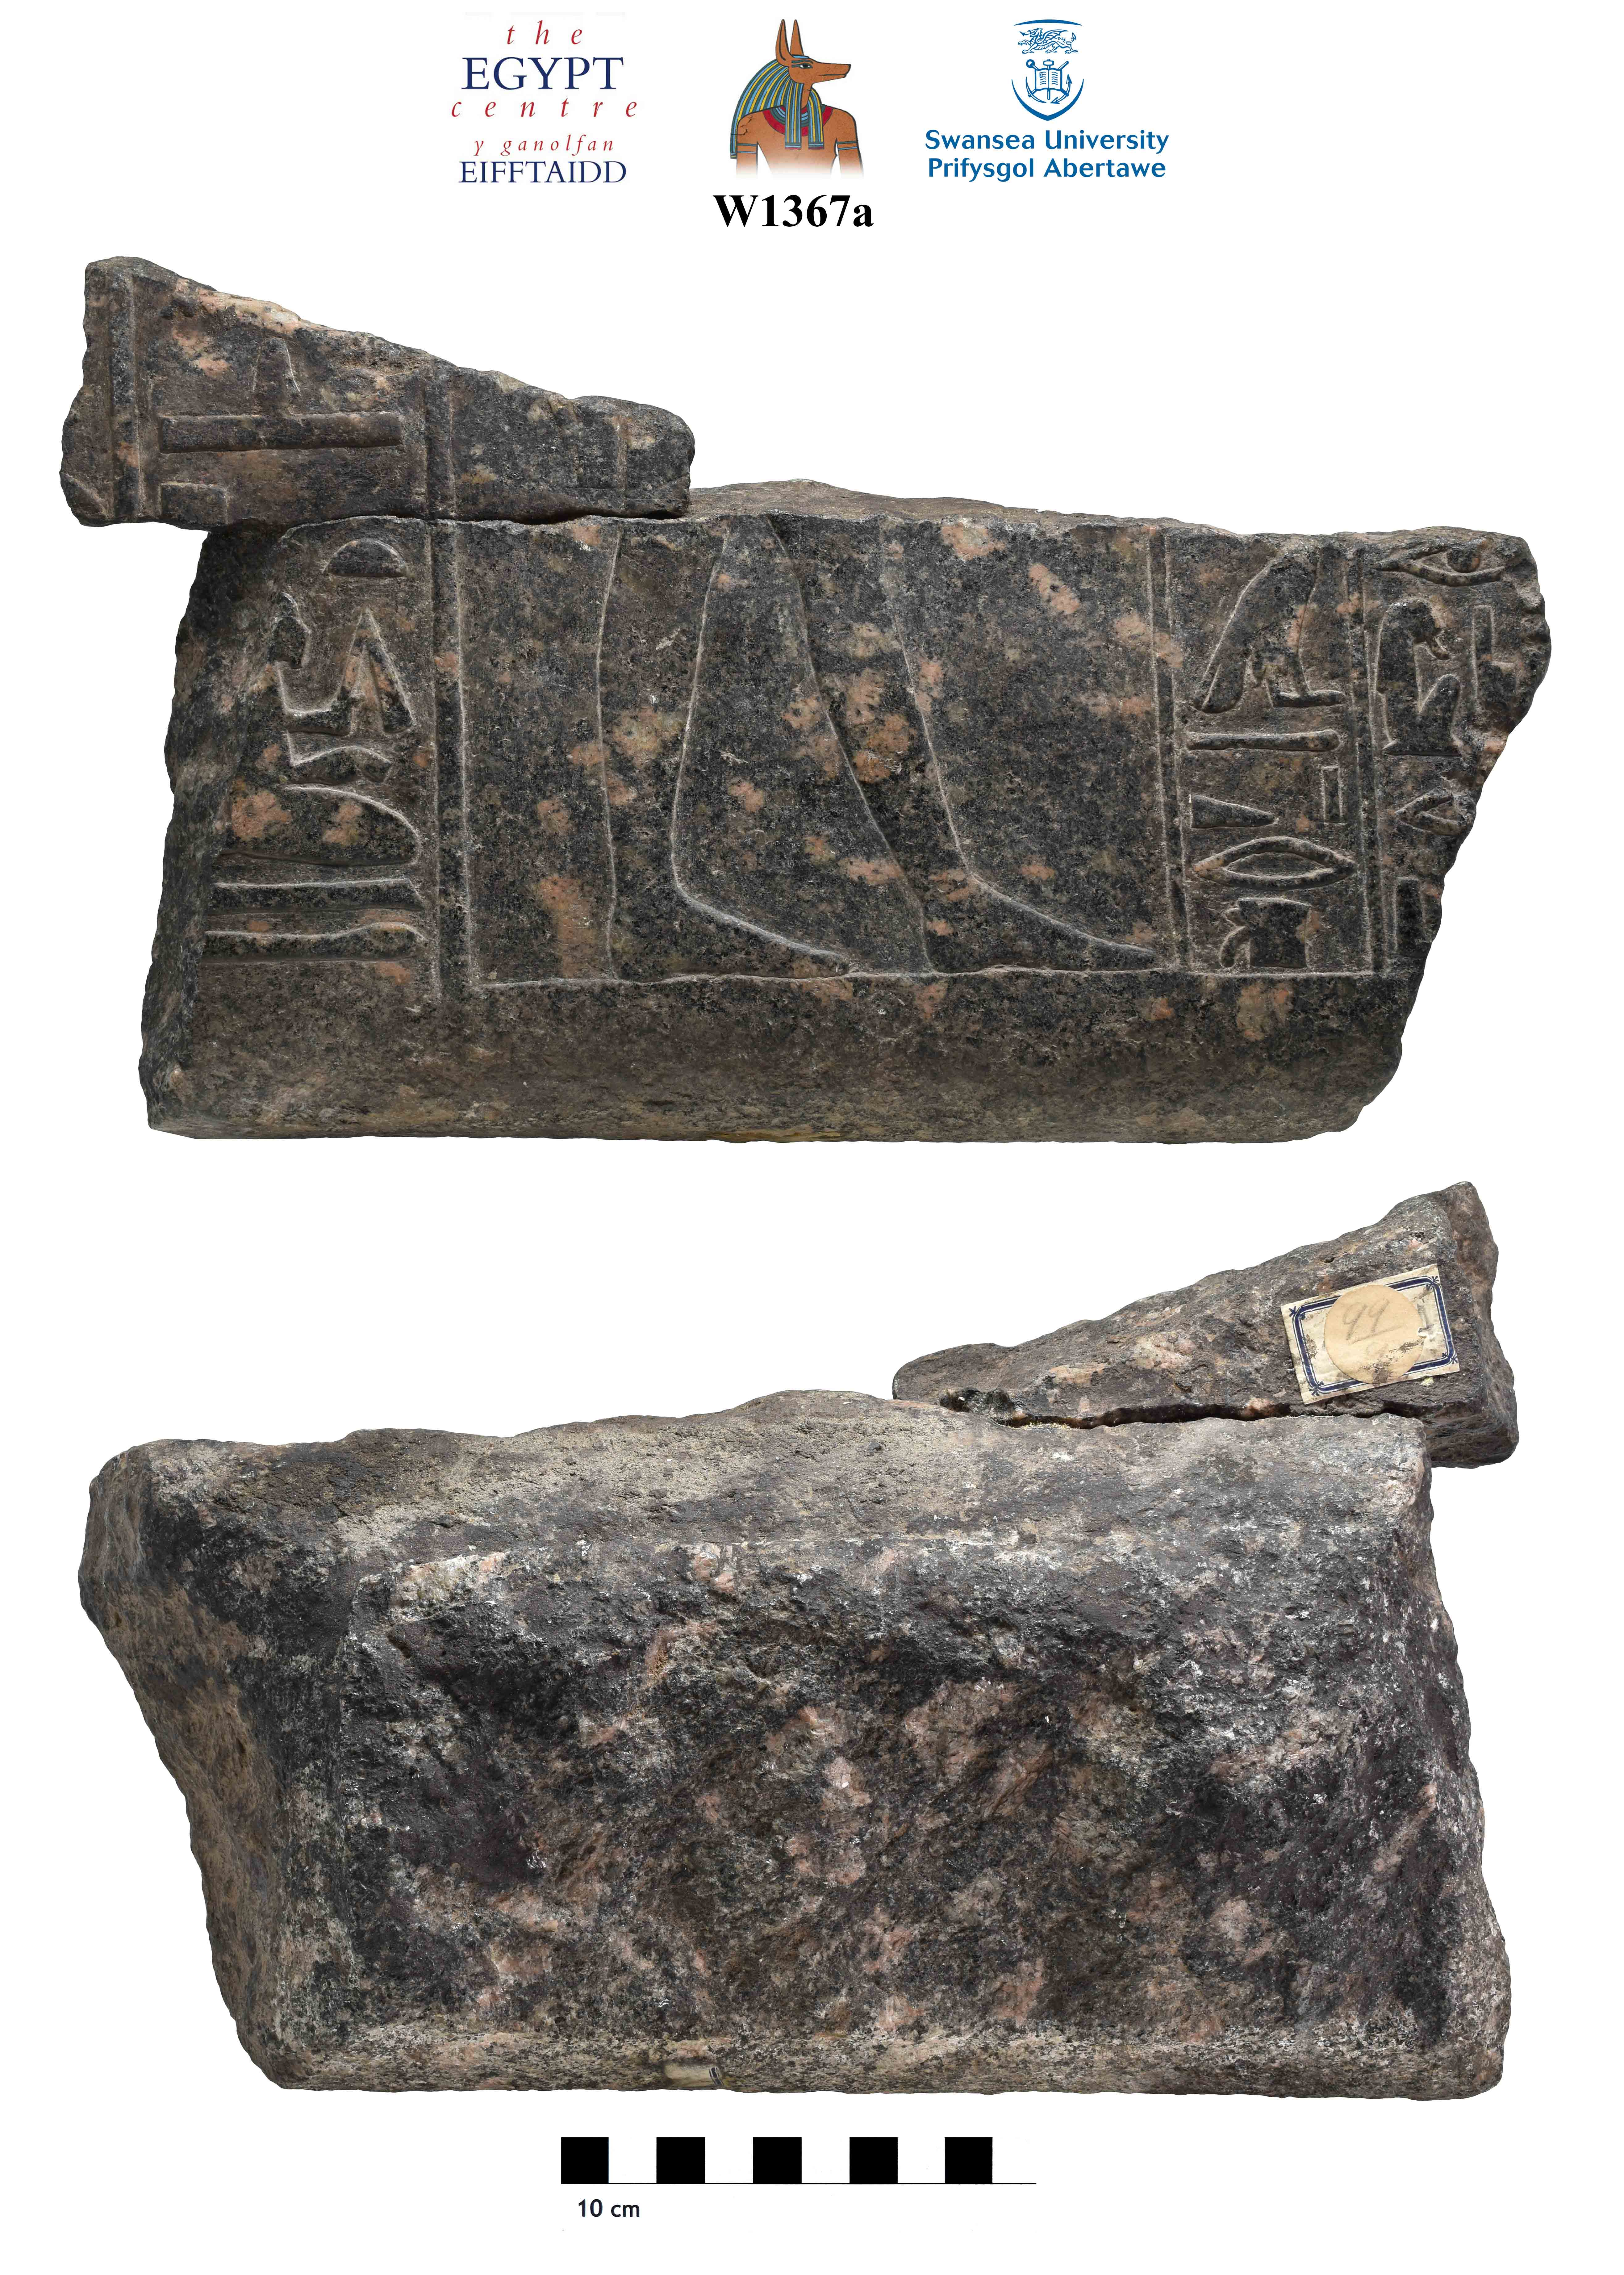 Image for: Fragment of a sarcophagus